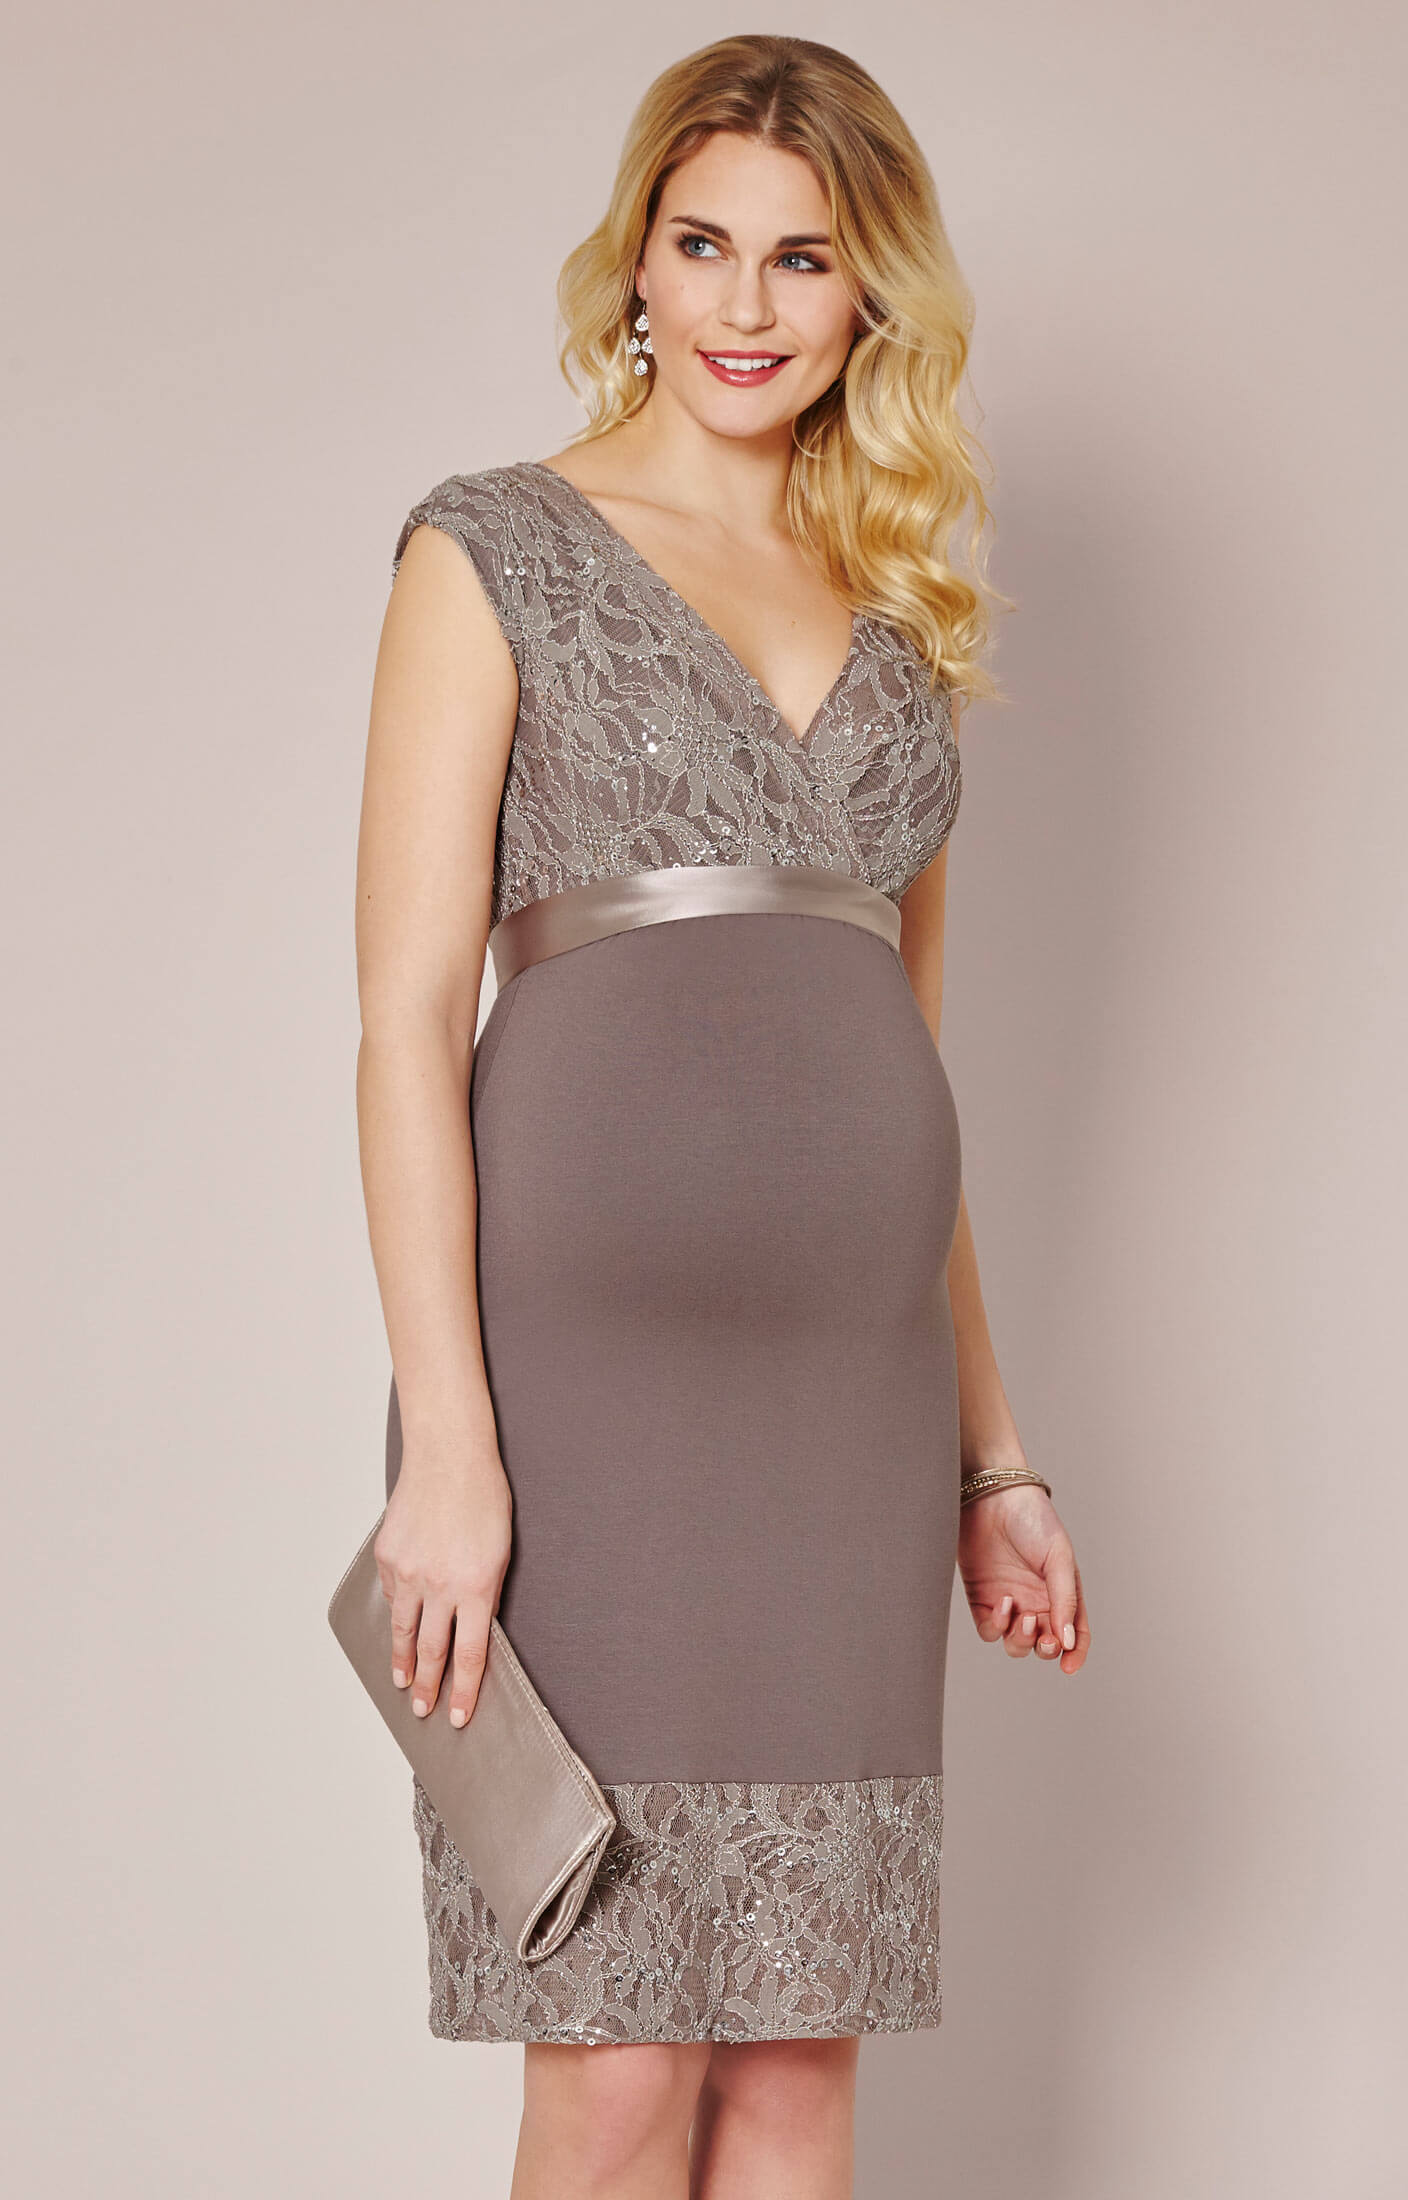 Twilight Lace Maternity Dress (Mocha) By Tiffany Rose